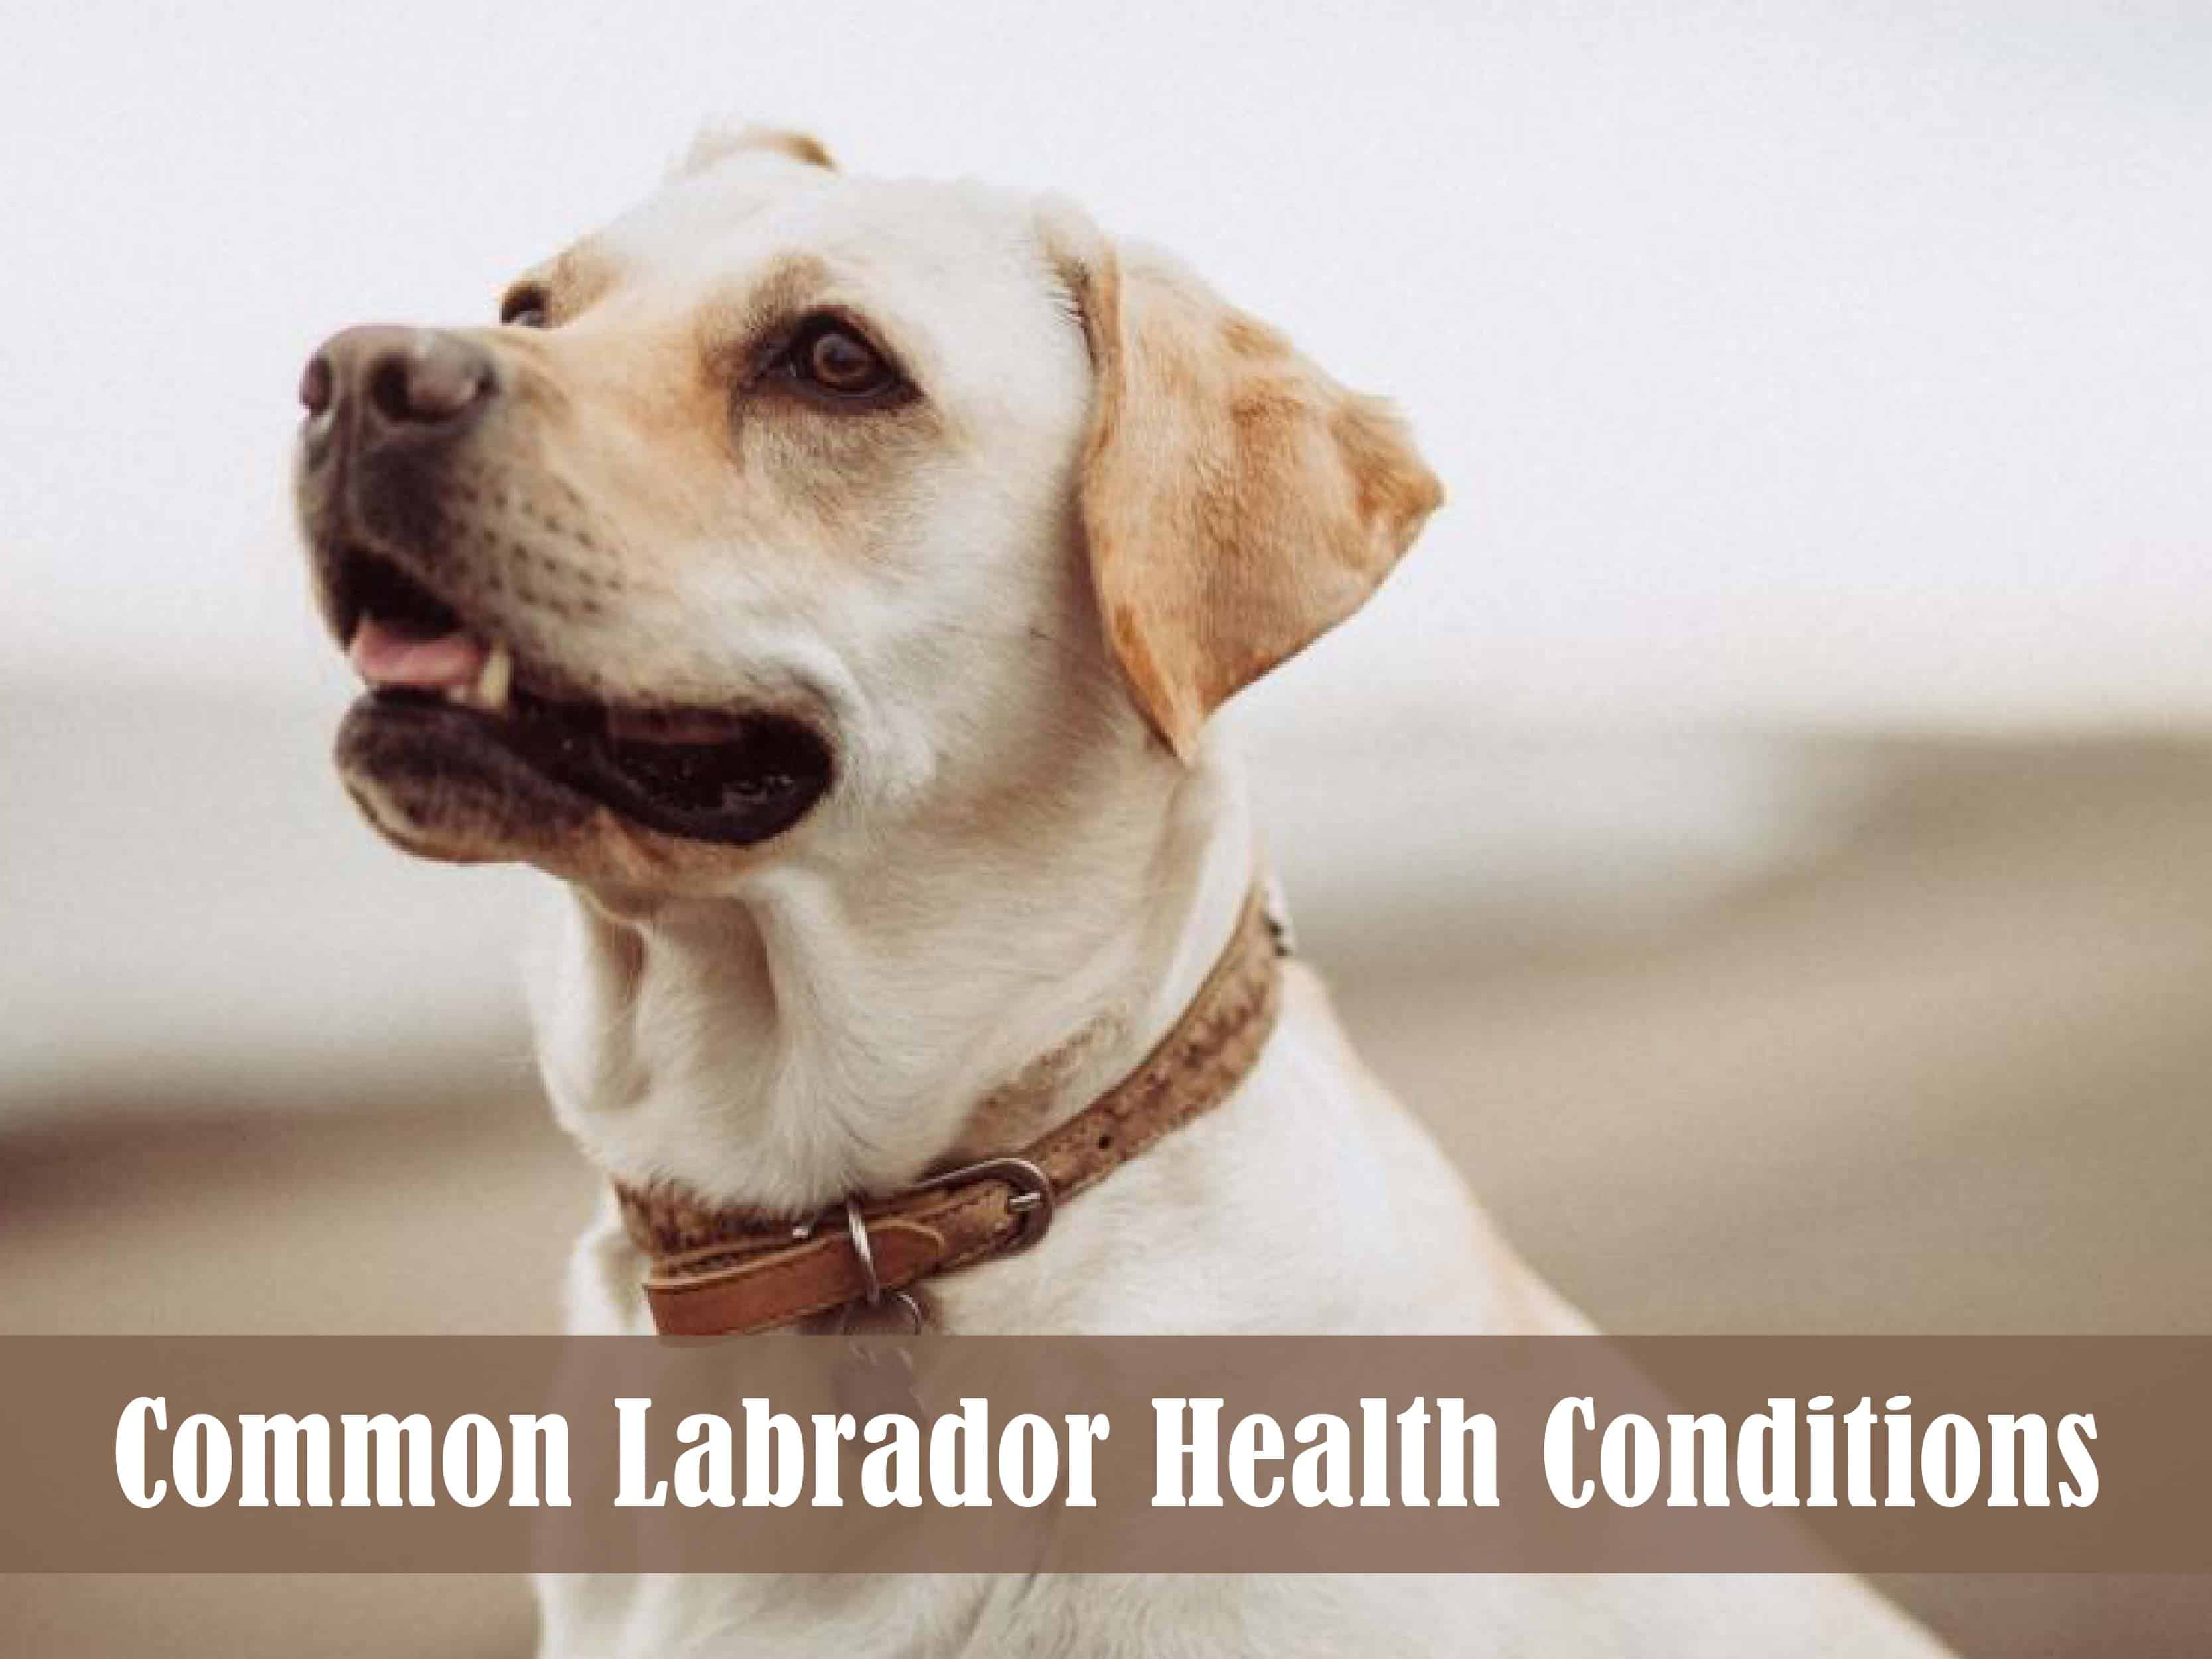 The Most Common Labrador Health Conditions and How to Prevent Them